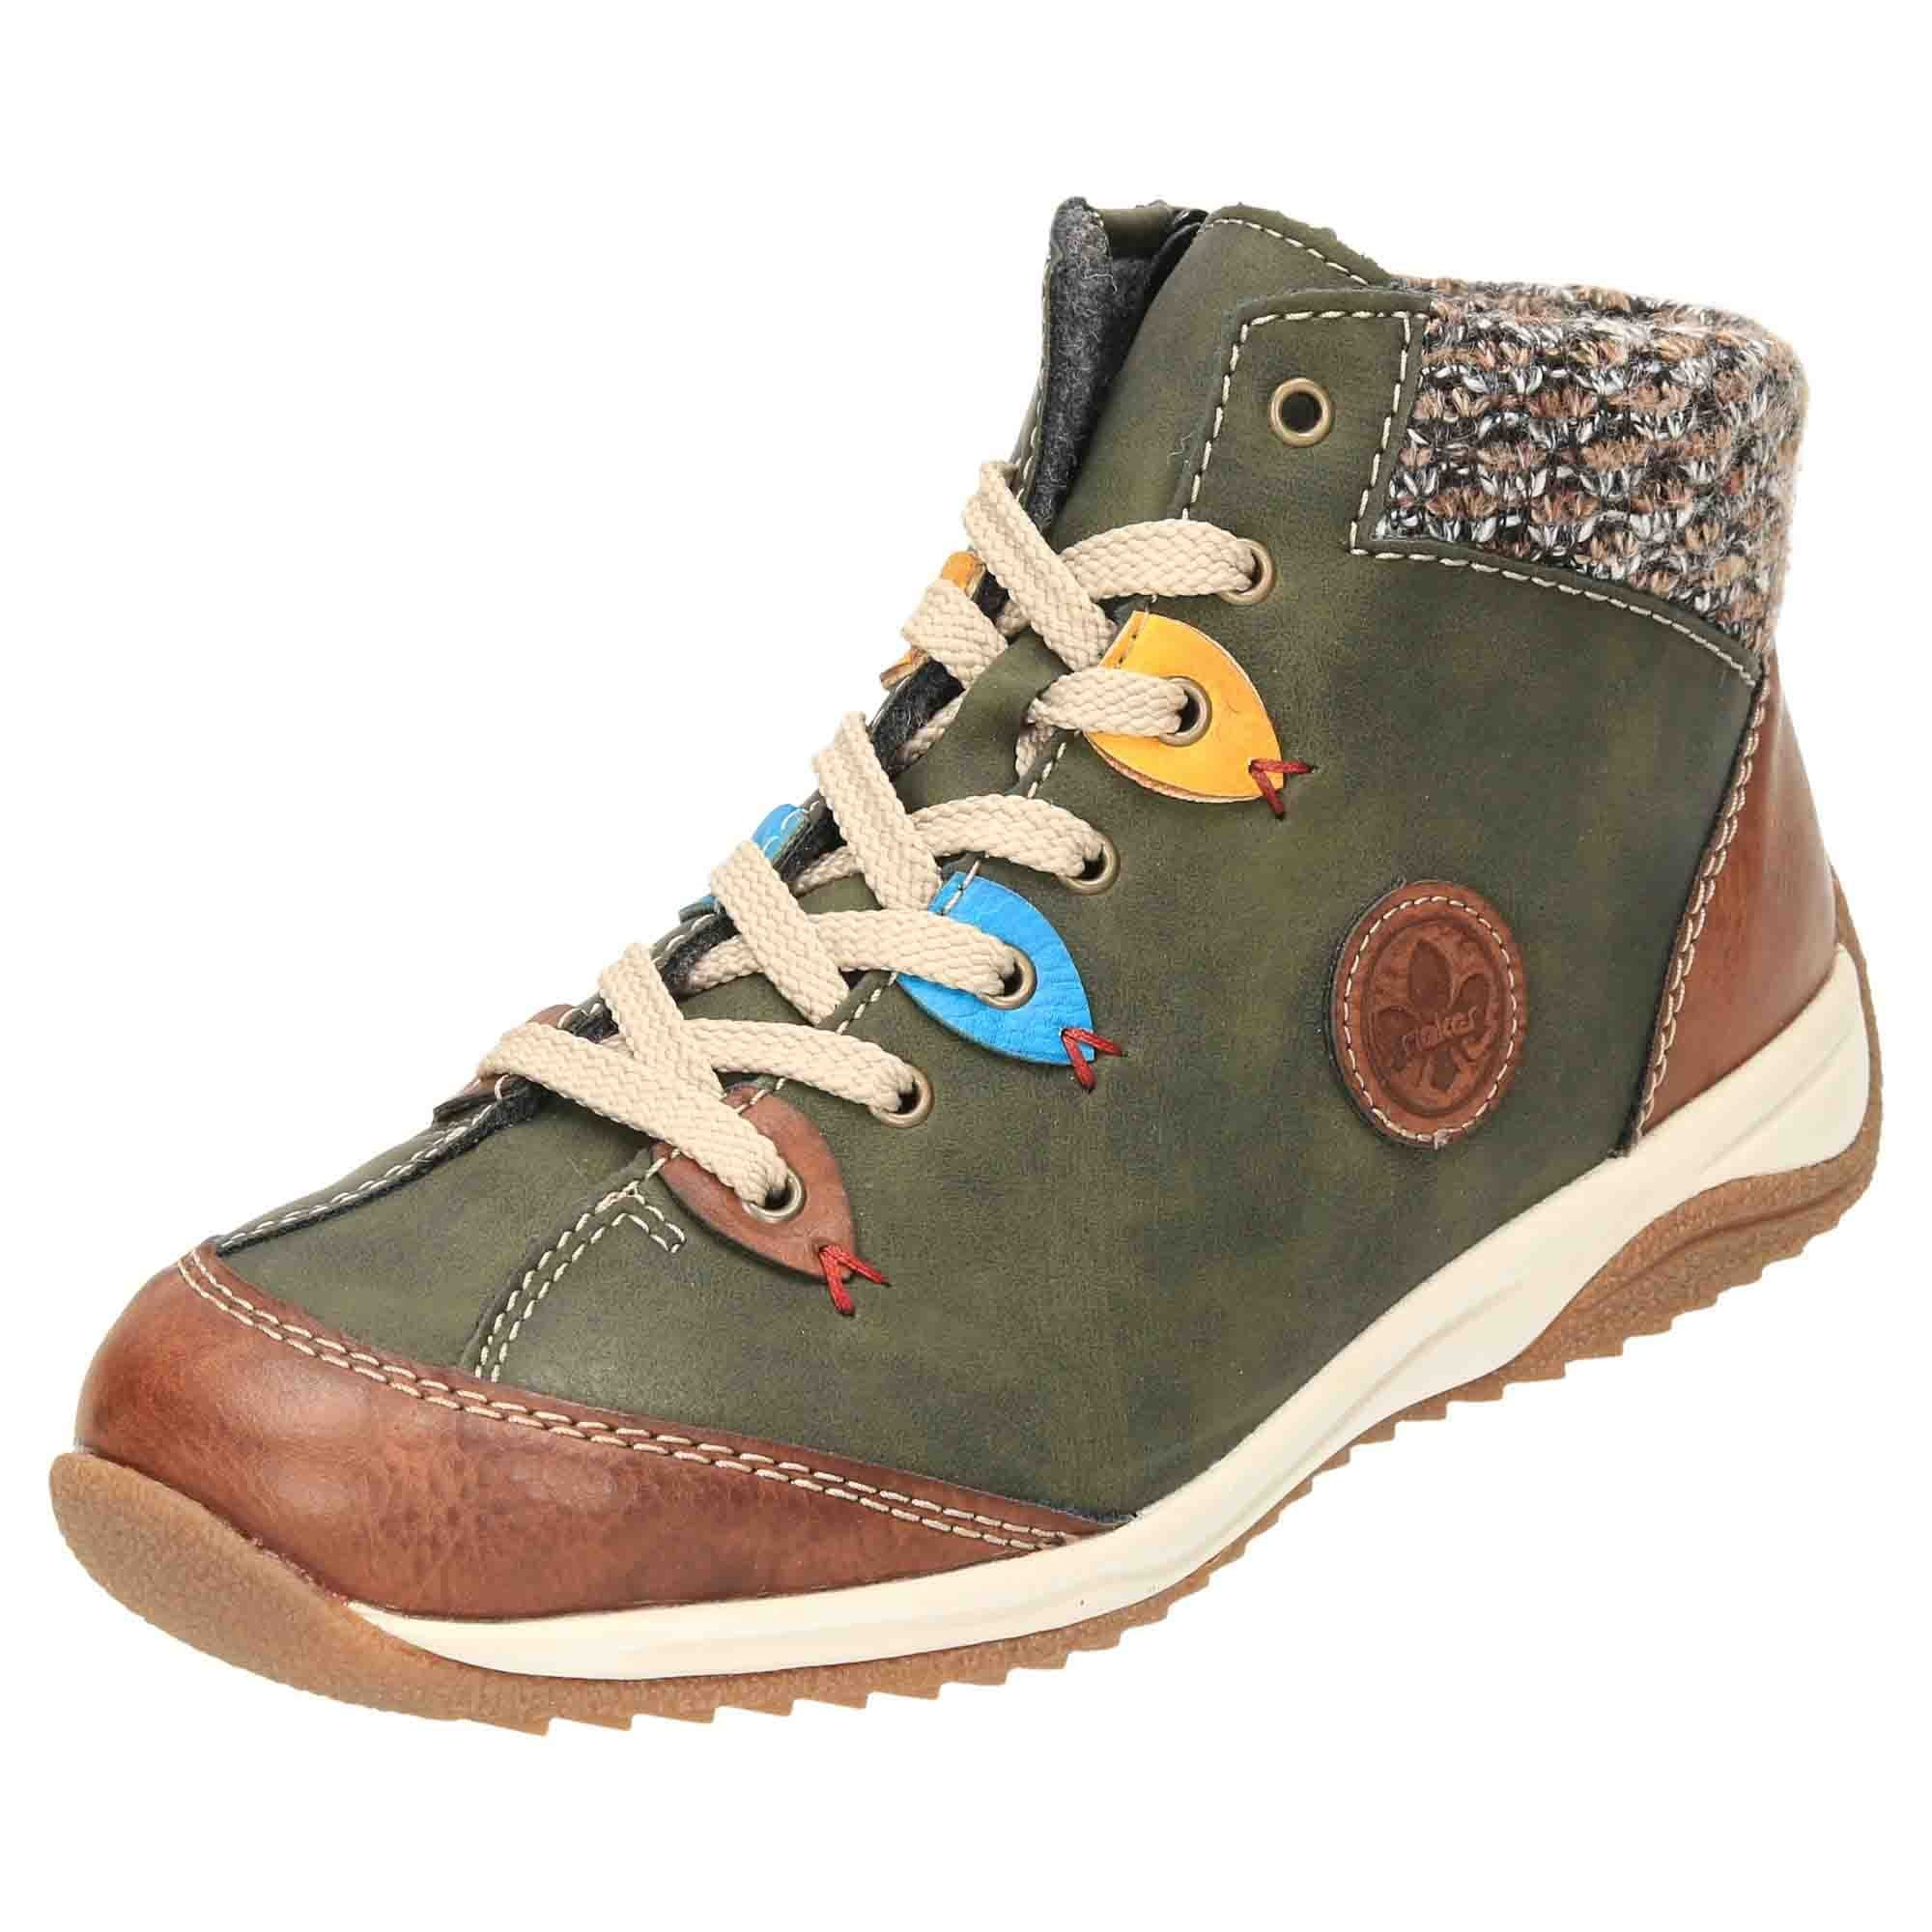 huge inventory size 7 sports shoes Rieker Lace Up Ankle Boots High Top Shoes L5222-24 - Ladies ...